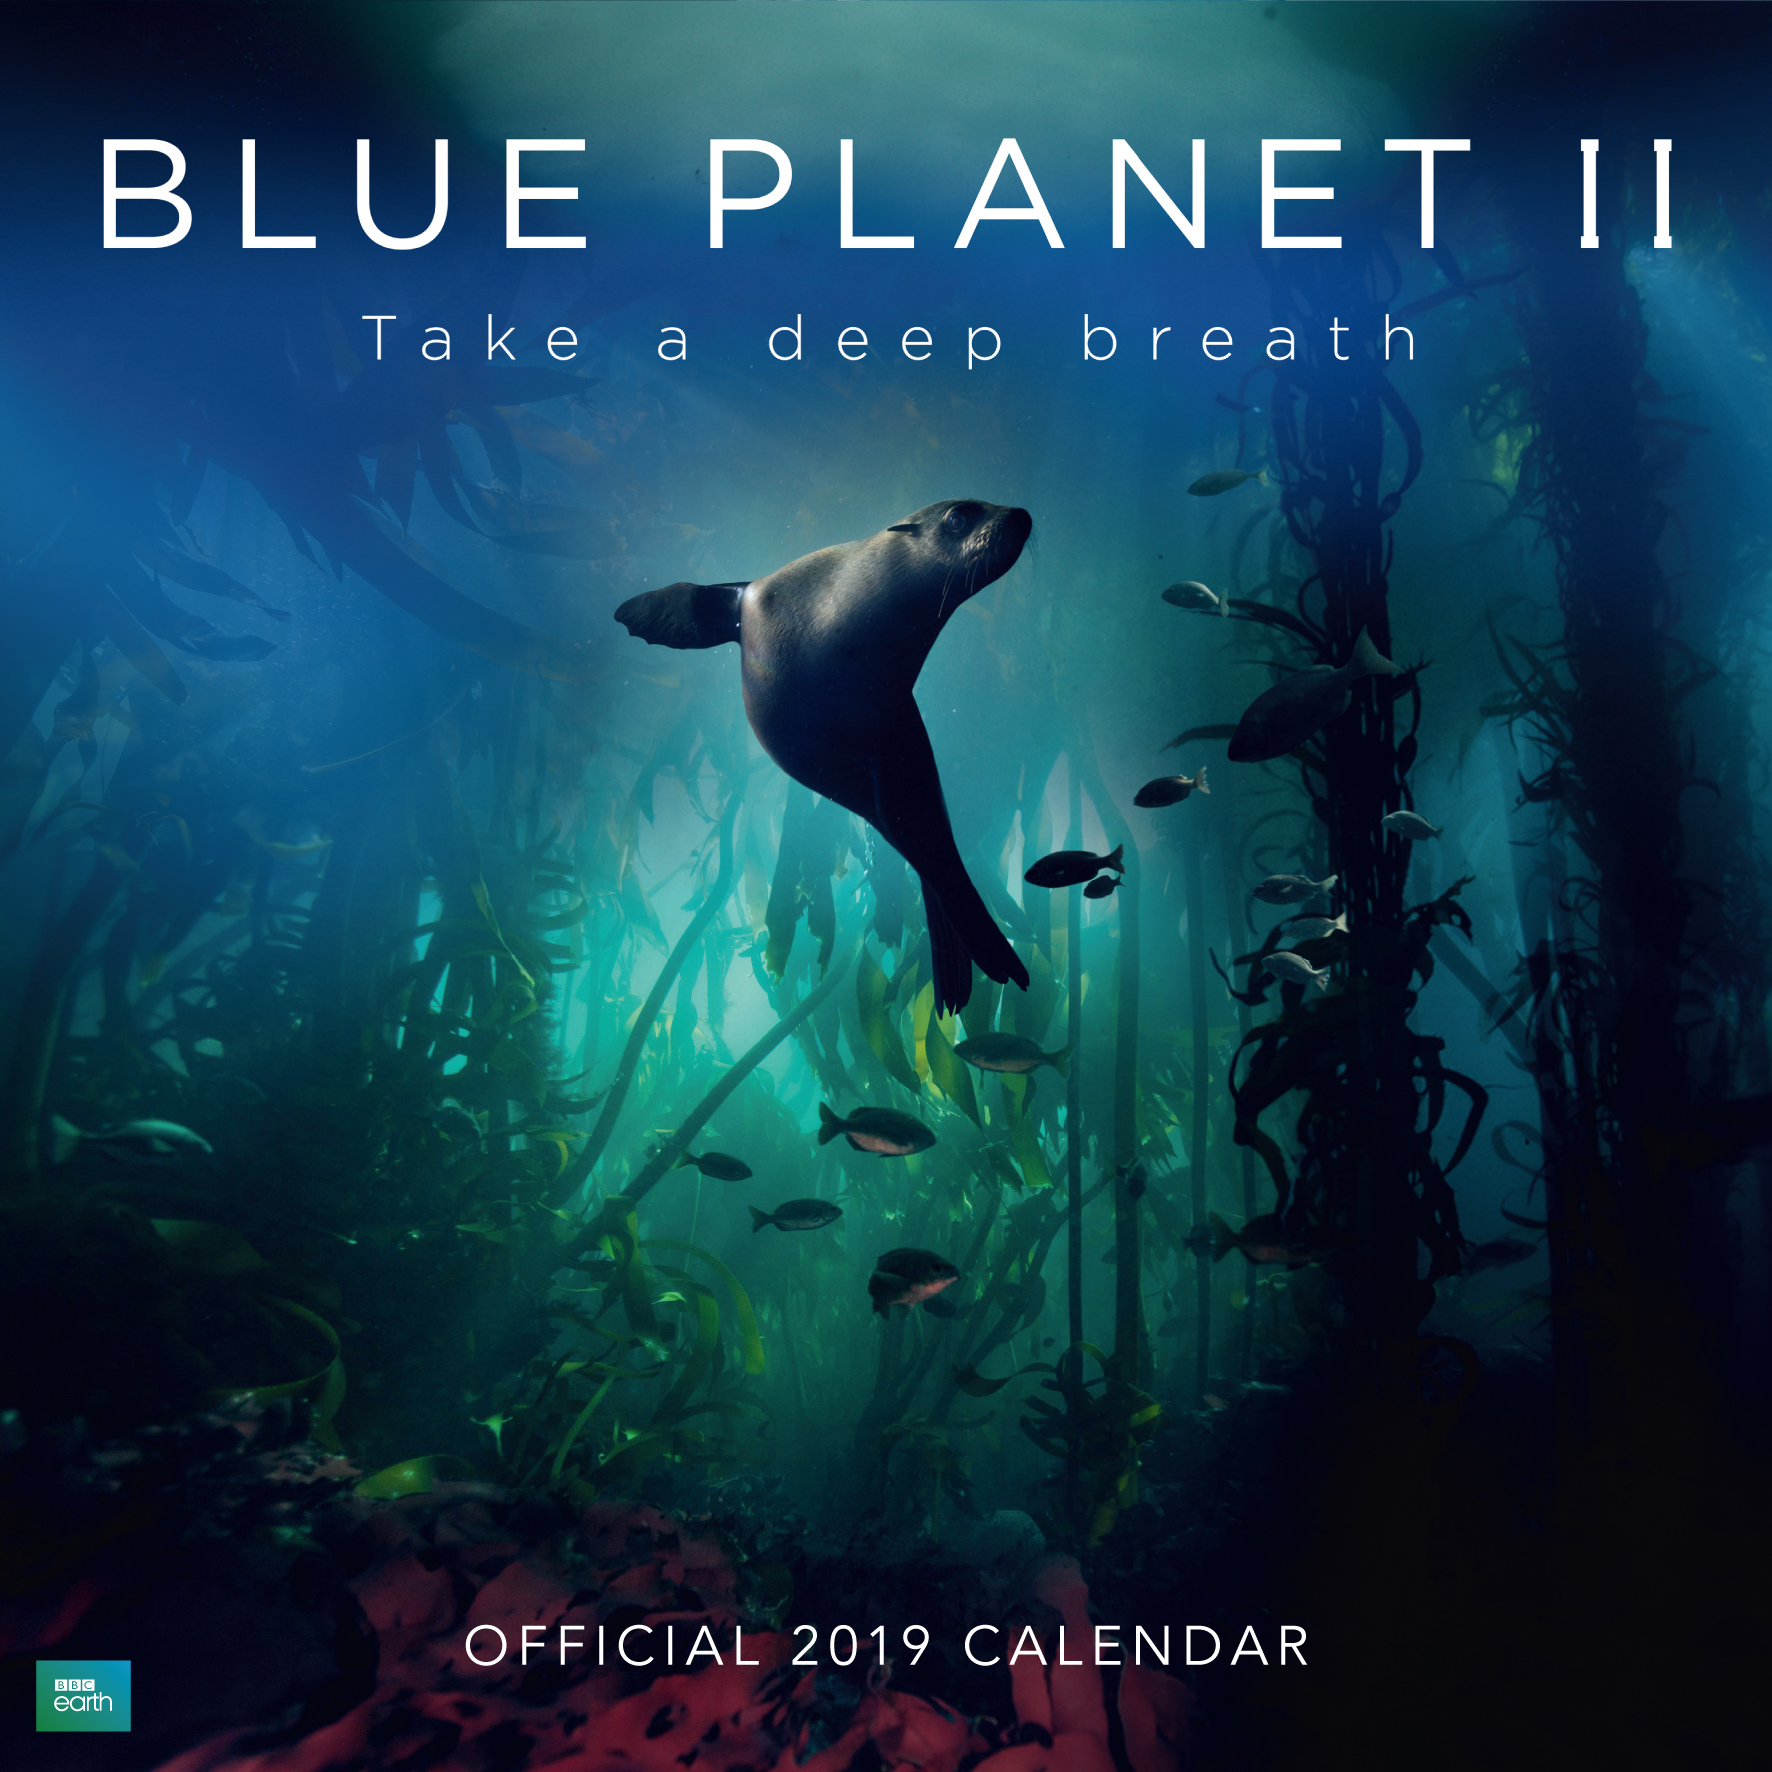 Above: Danilo's BBC Blue Planet II 2019 won the Best Animal Kingdom Calendar award in The Calies.